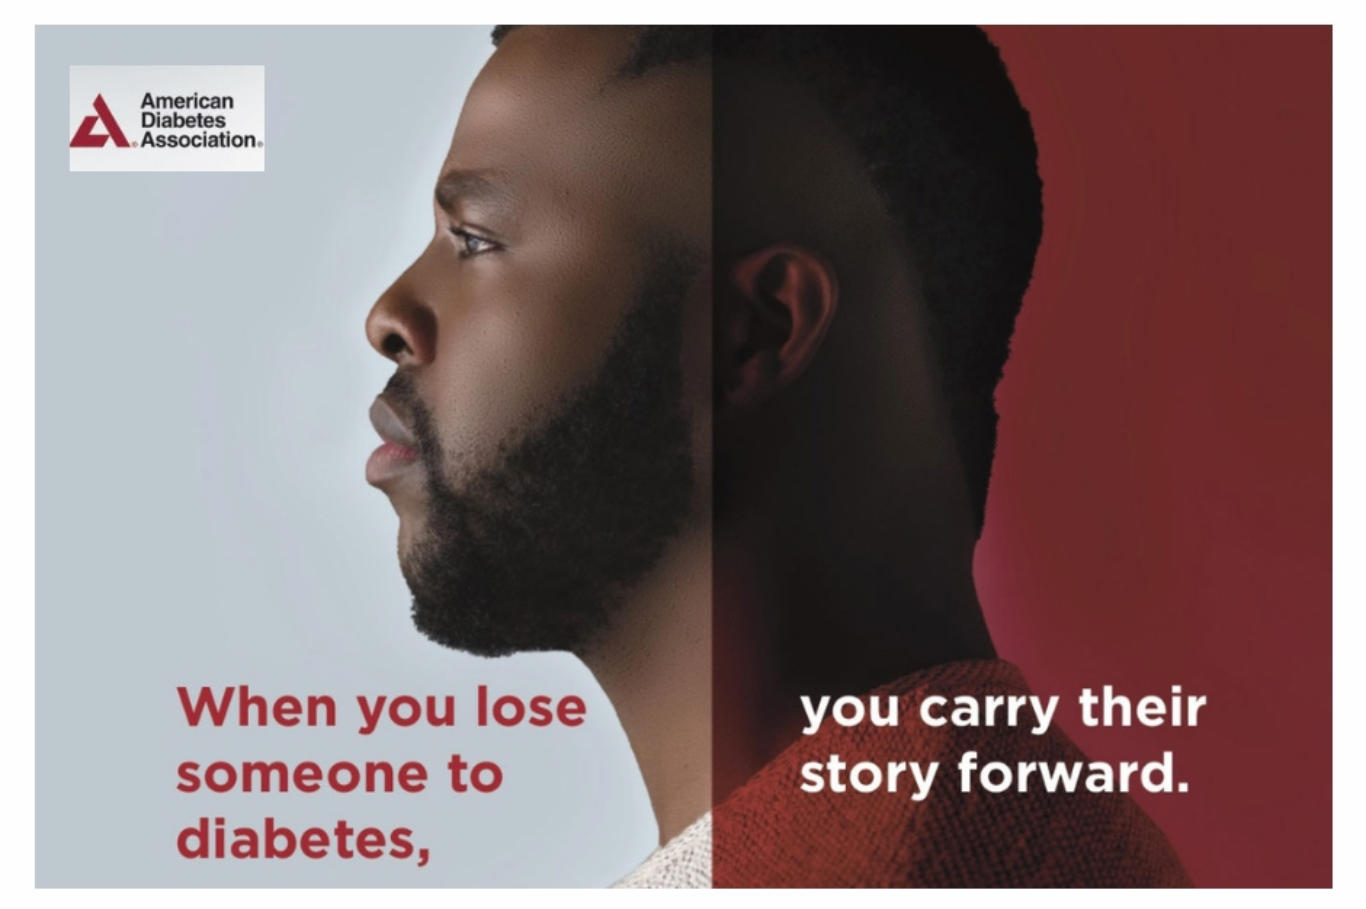 https://dlife.com/10-diabetes-myth-busters-to-raise-awareness-for-2018-american-diabetes-month/